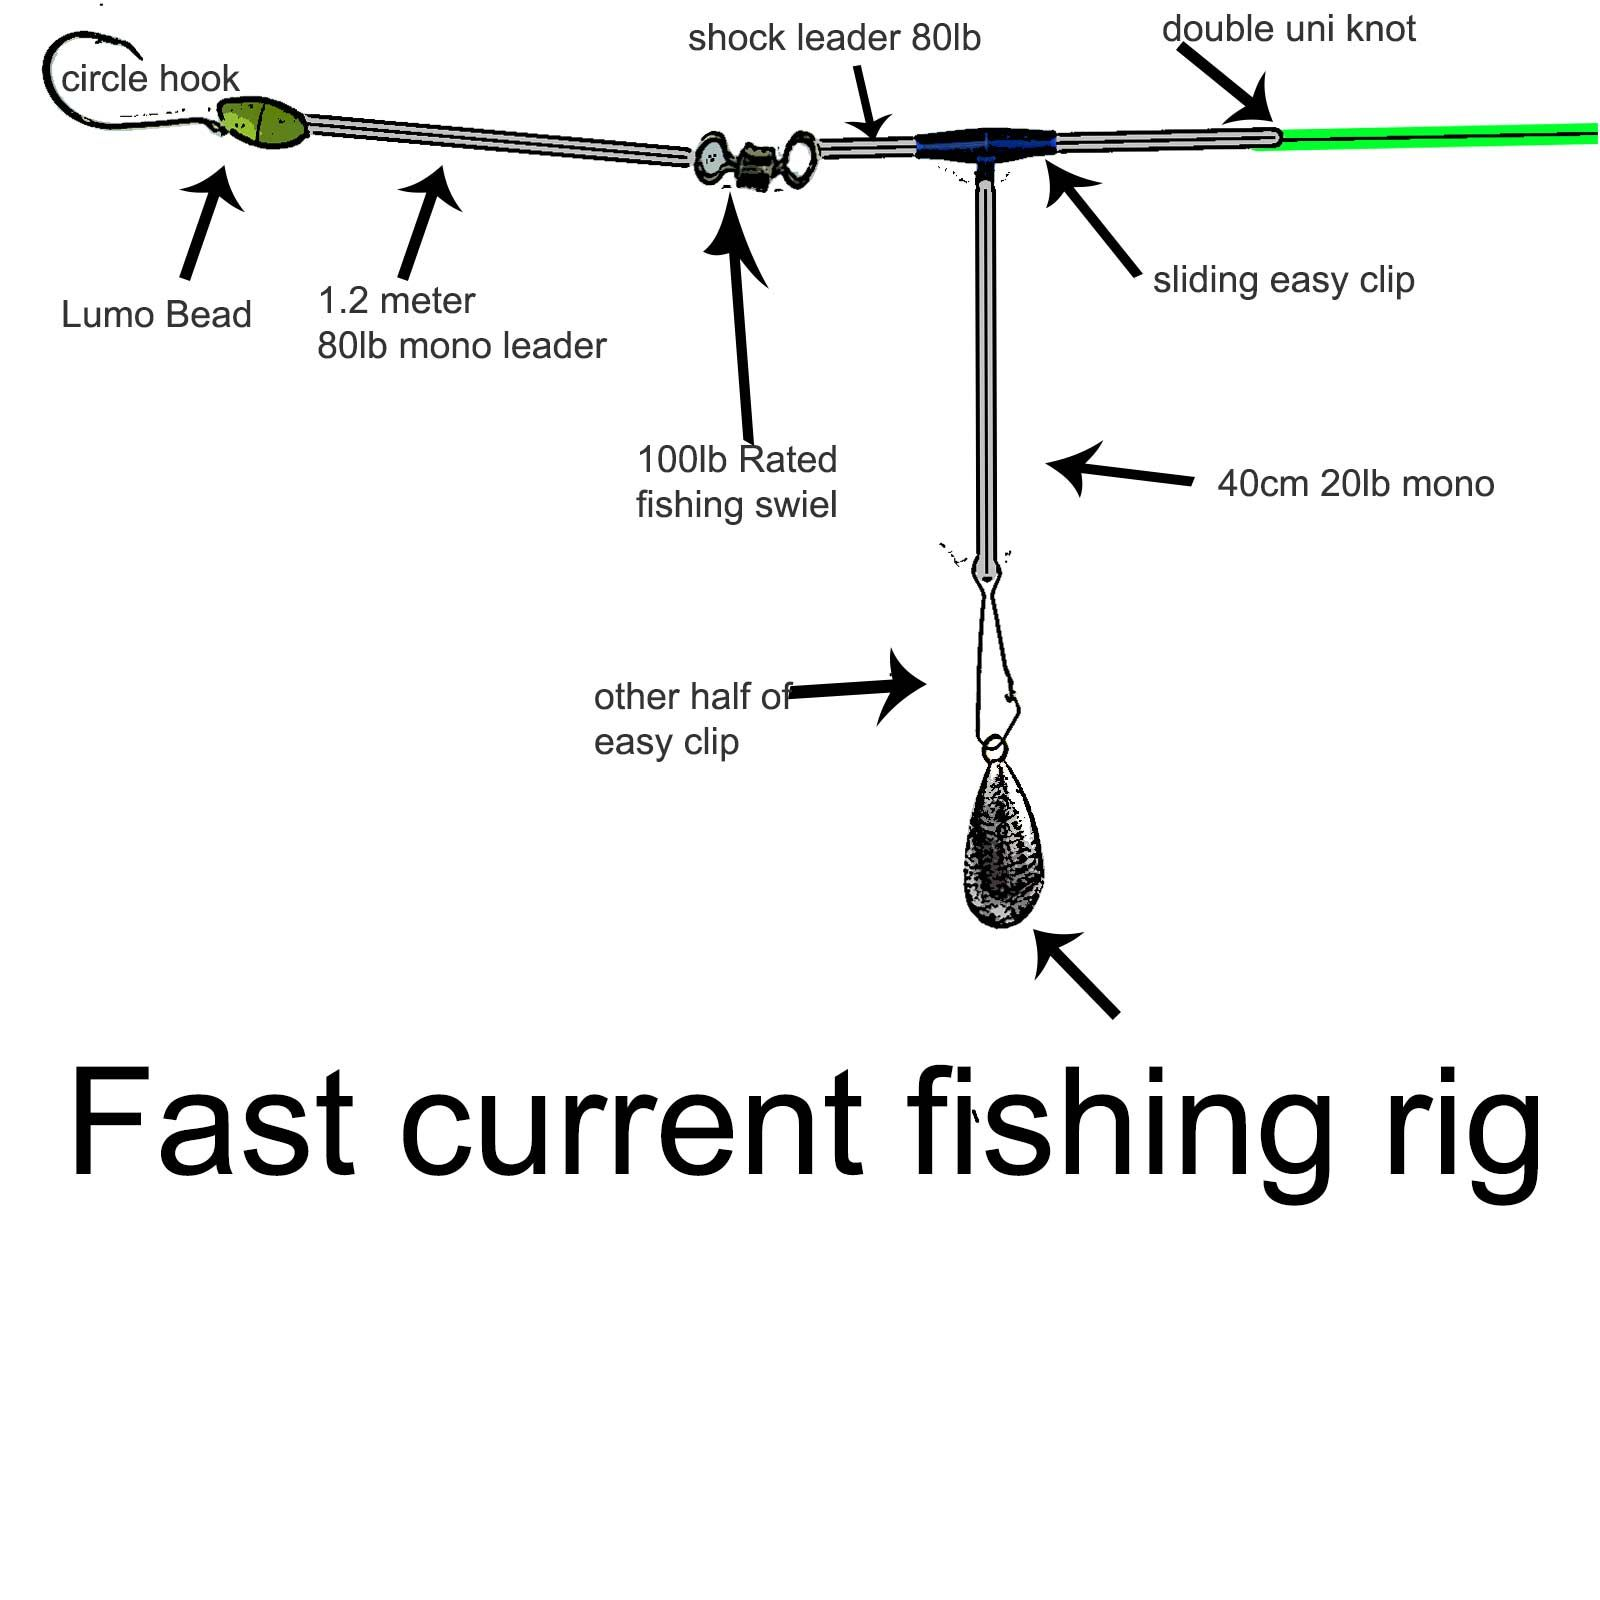 fast current fishing rig diagram   western port rig  gummy